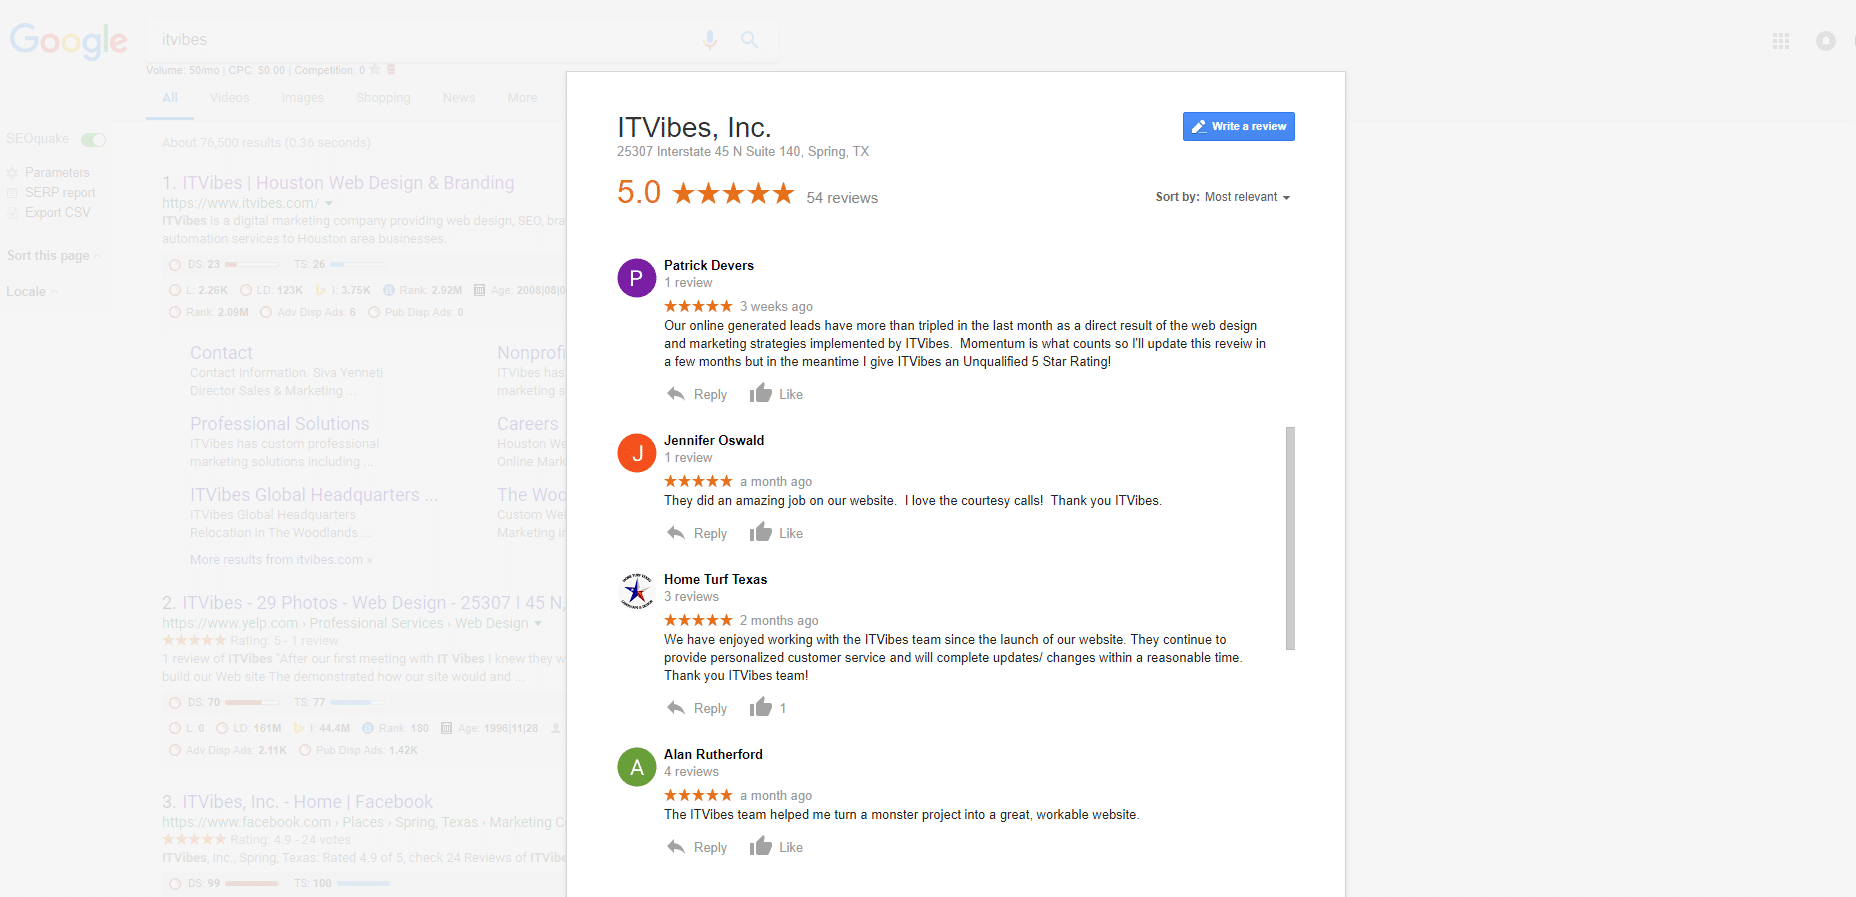 How to Make Google Reviews Work for Your Business